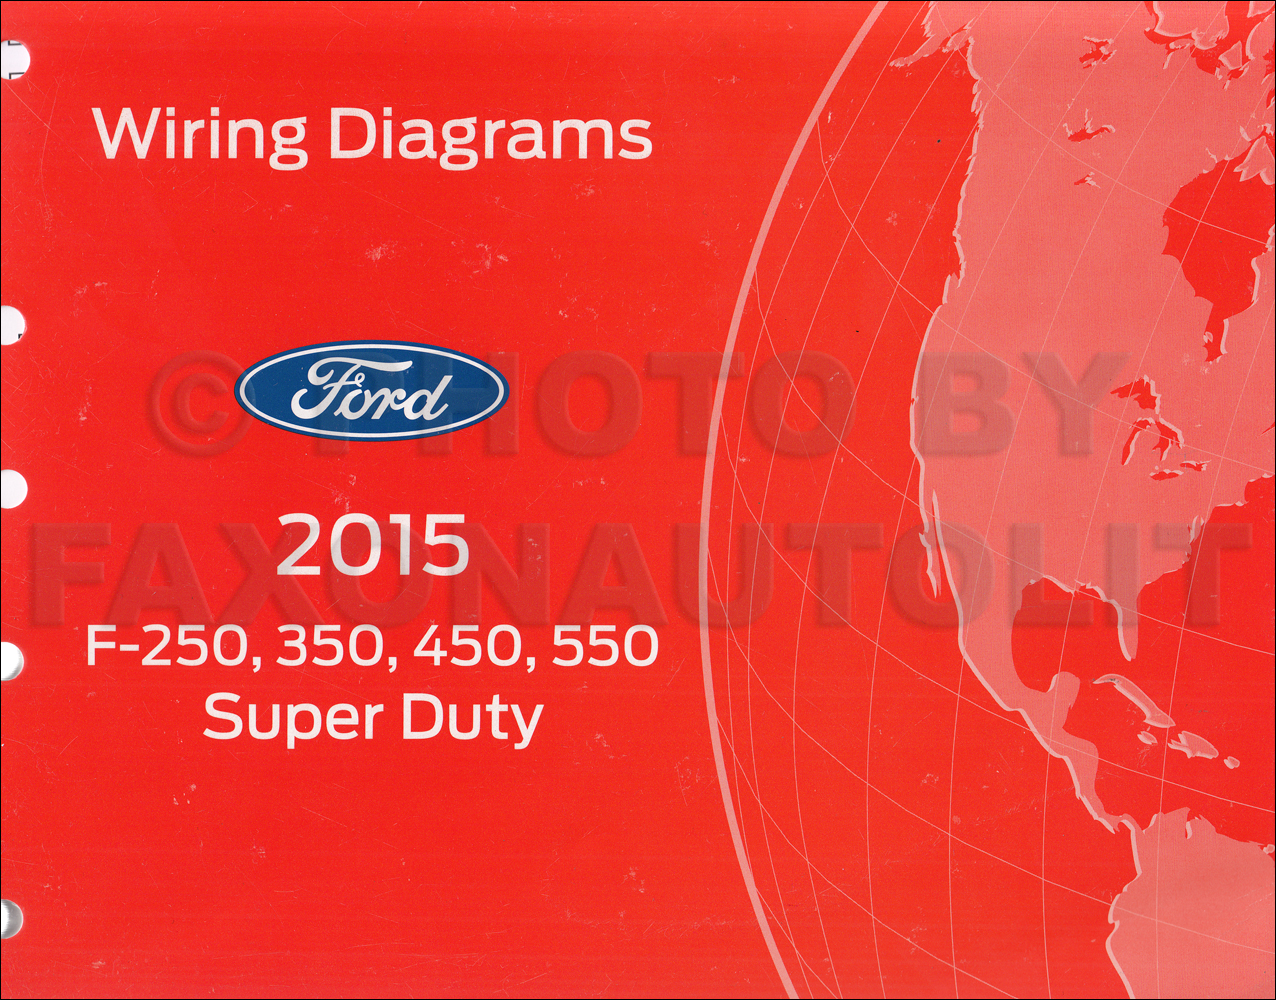 2015 ford f250-f550 super dutytruck wiring diagram manual ... 1964 ford f 250 wiring diagram